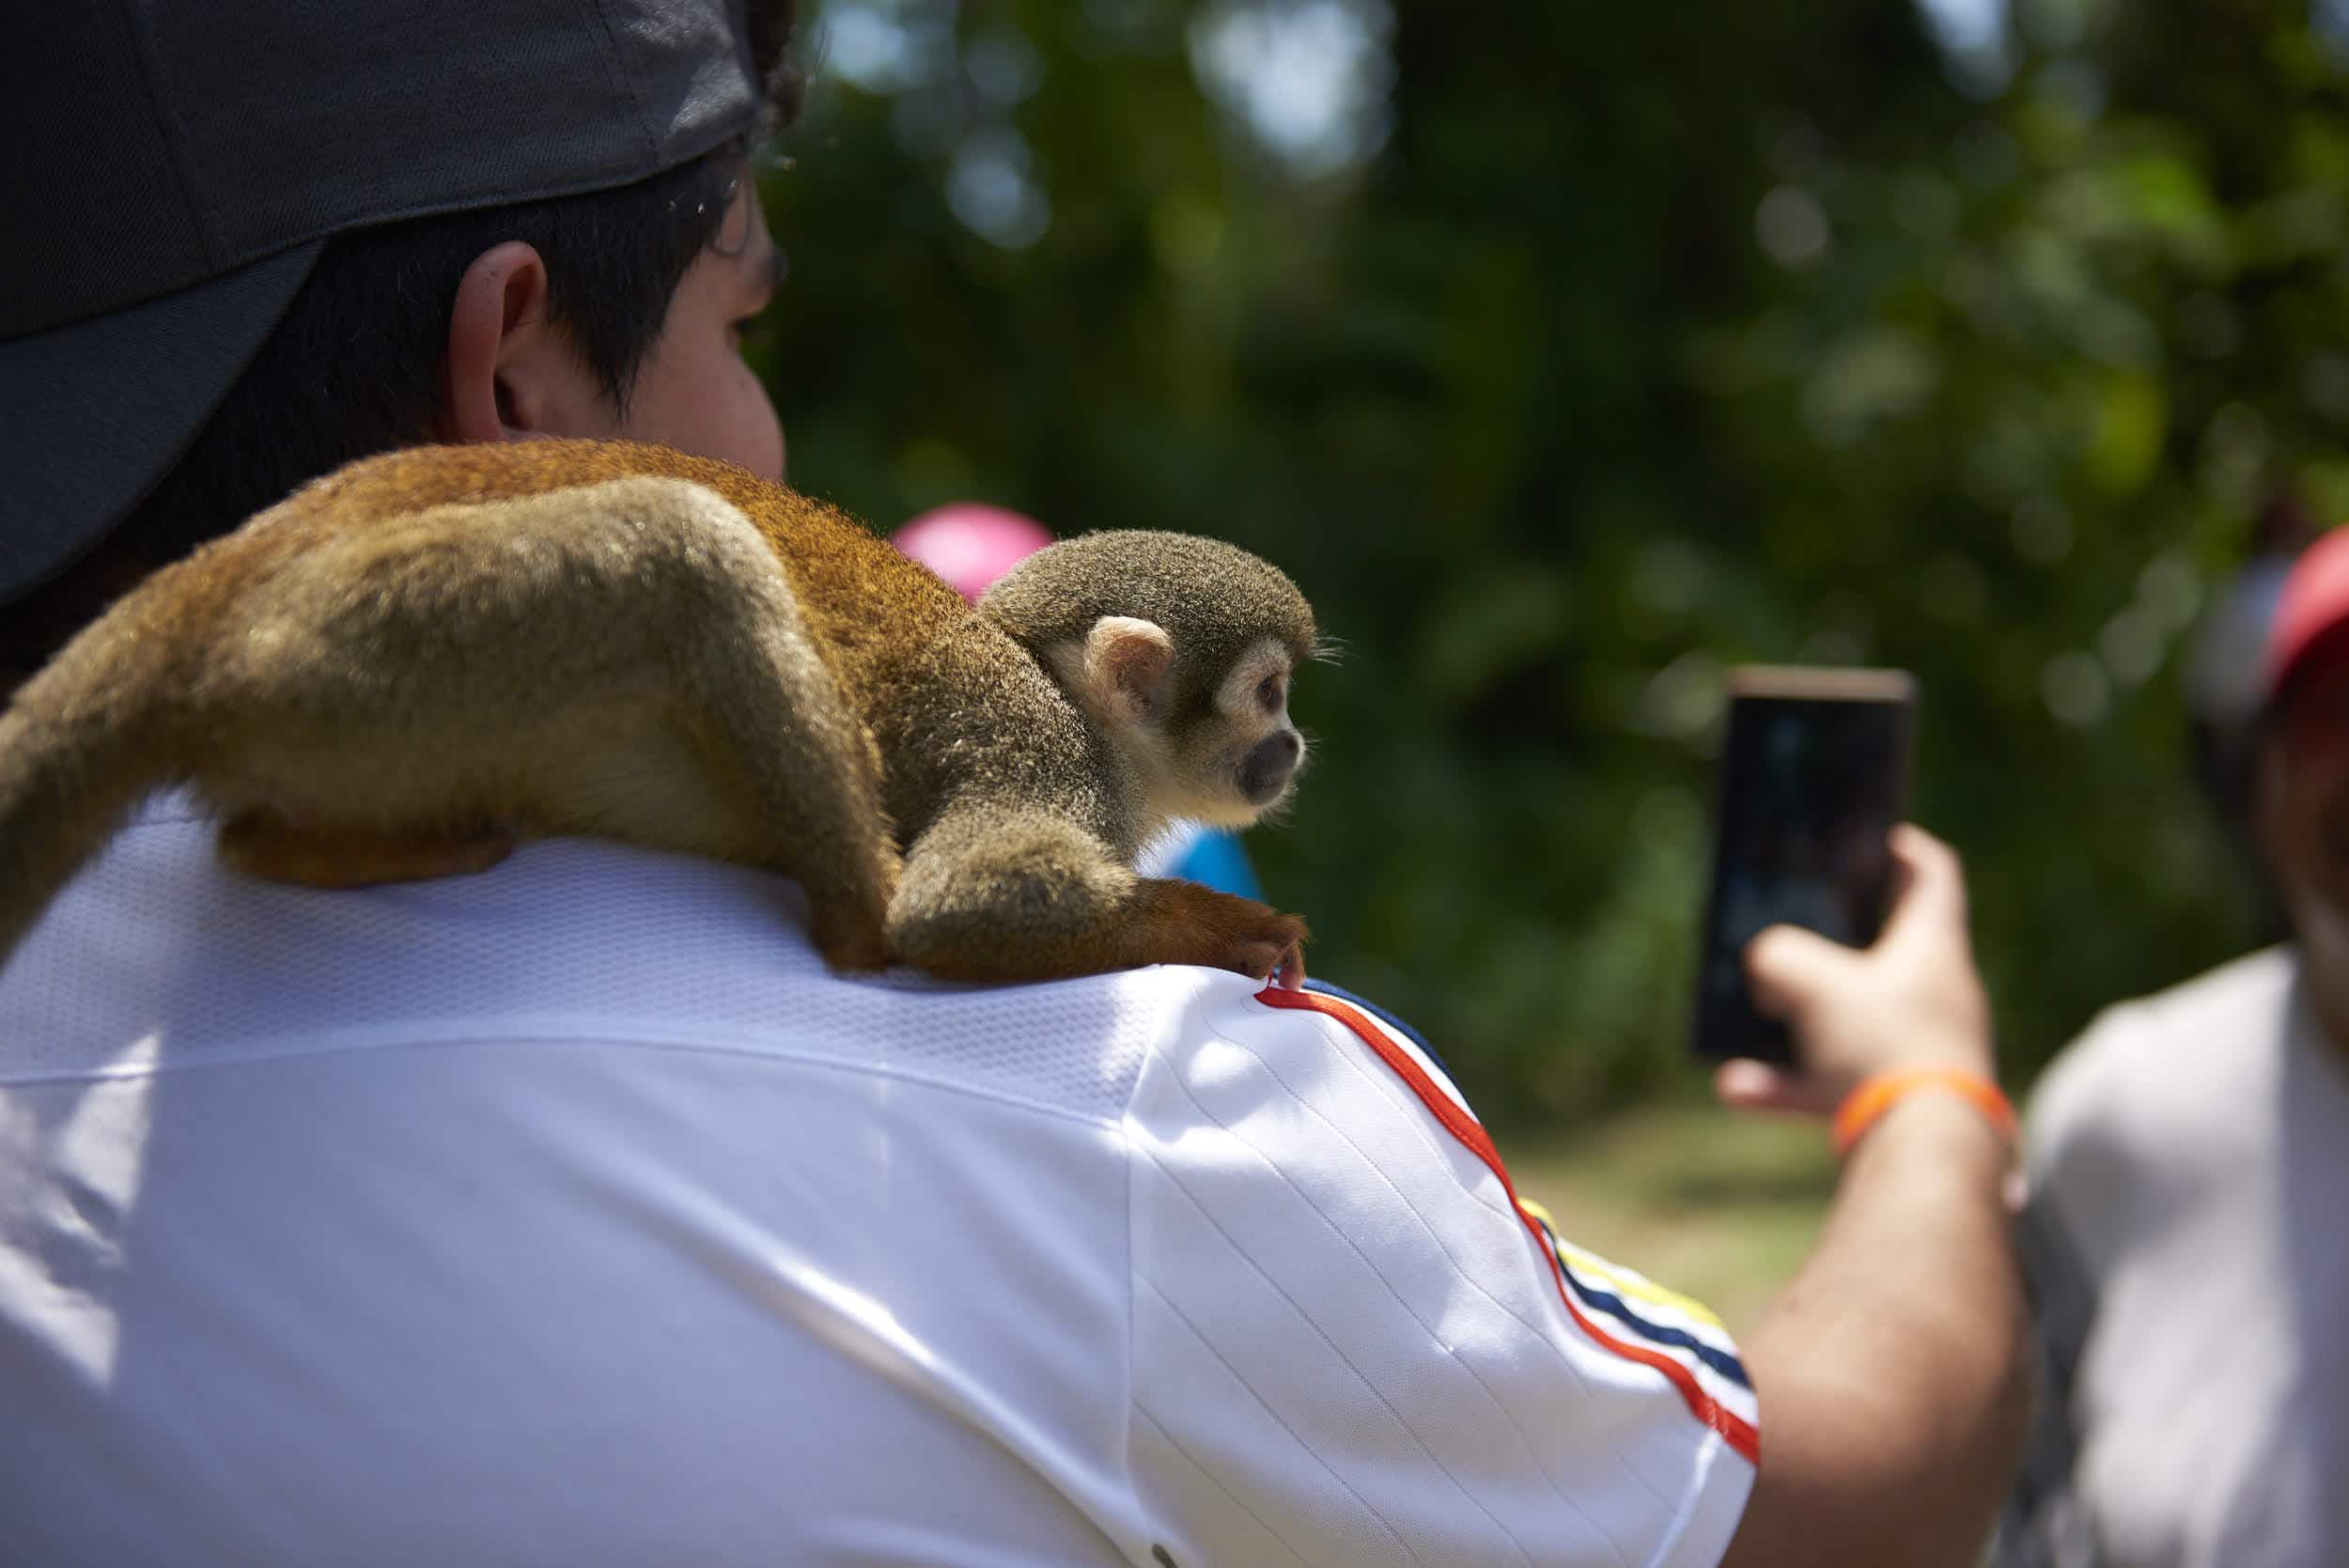 Wildlife selfies are never a good idea. Image by World Animal Protection